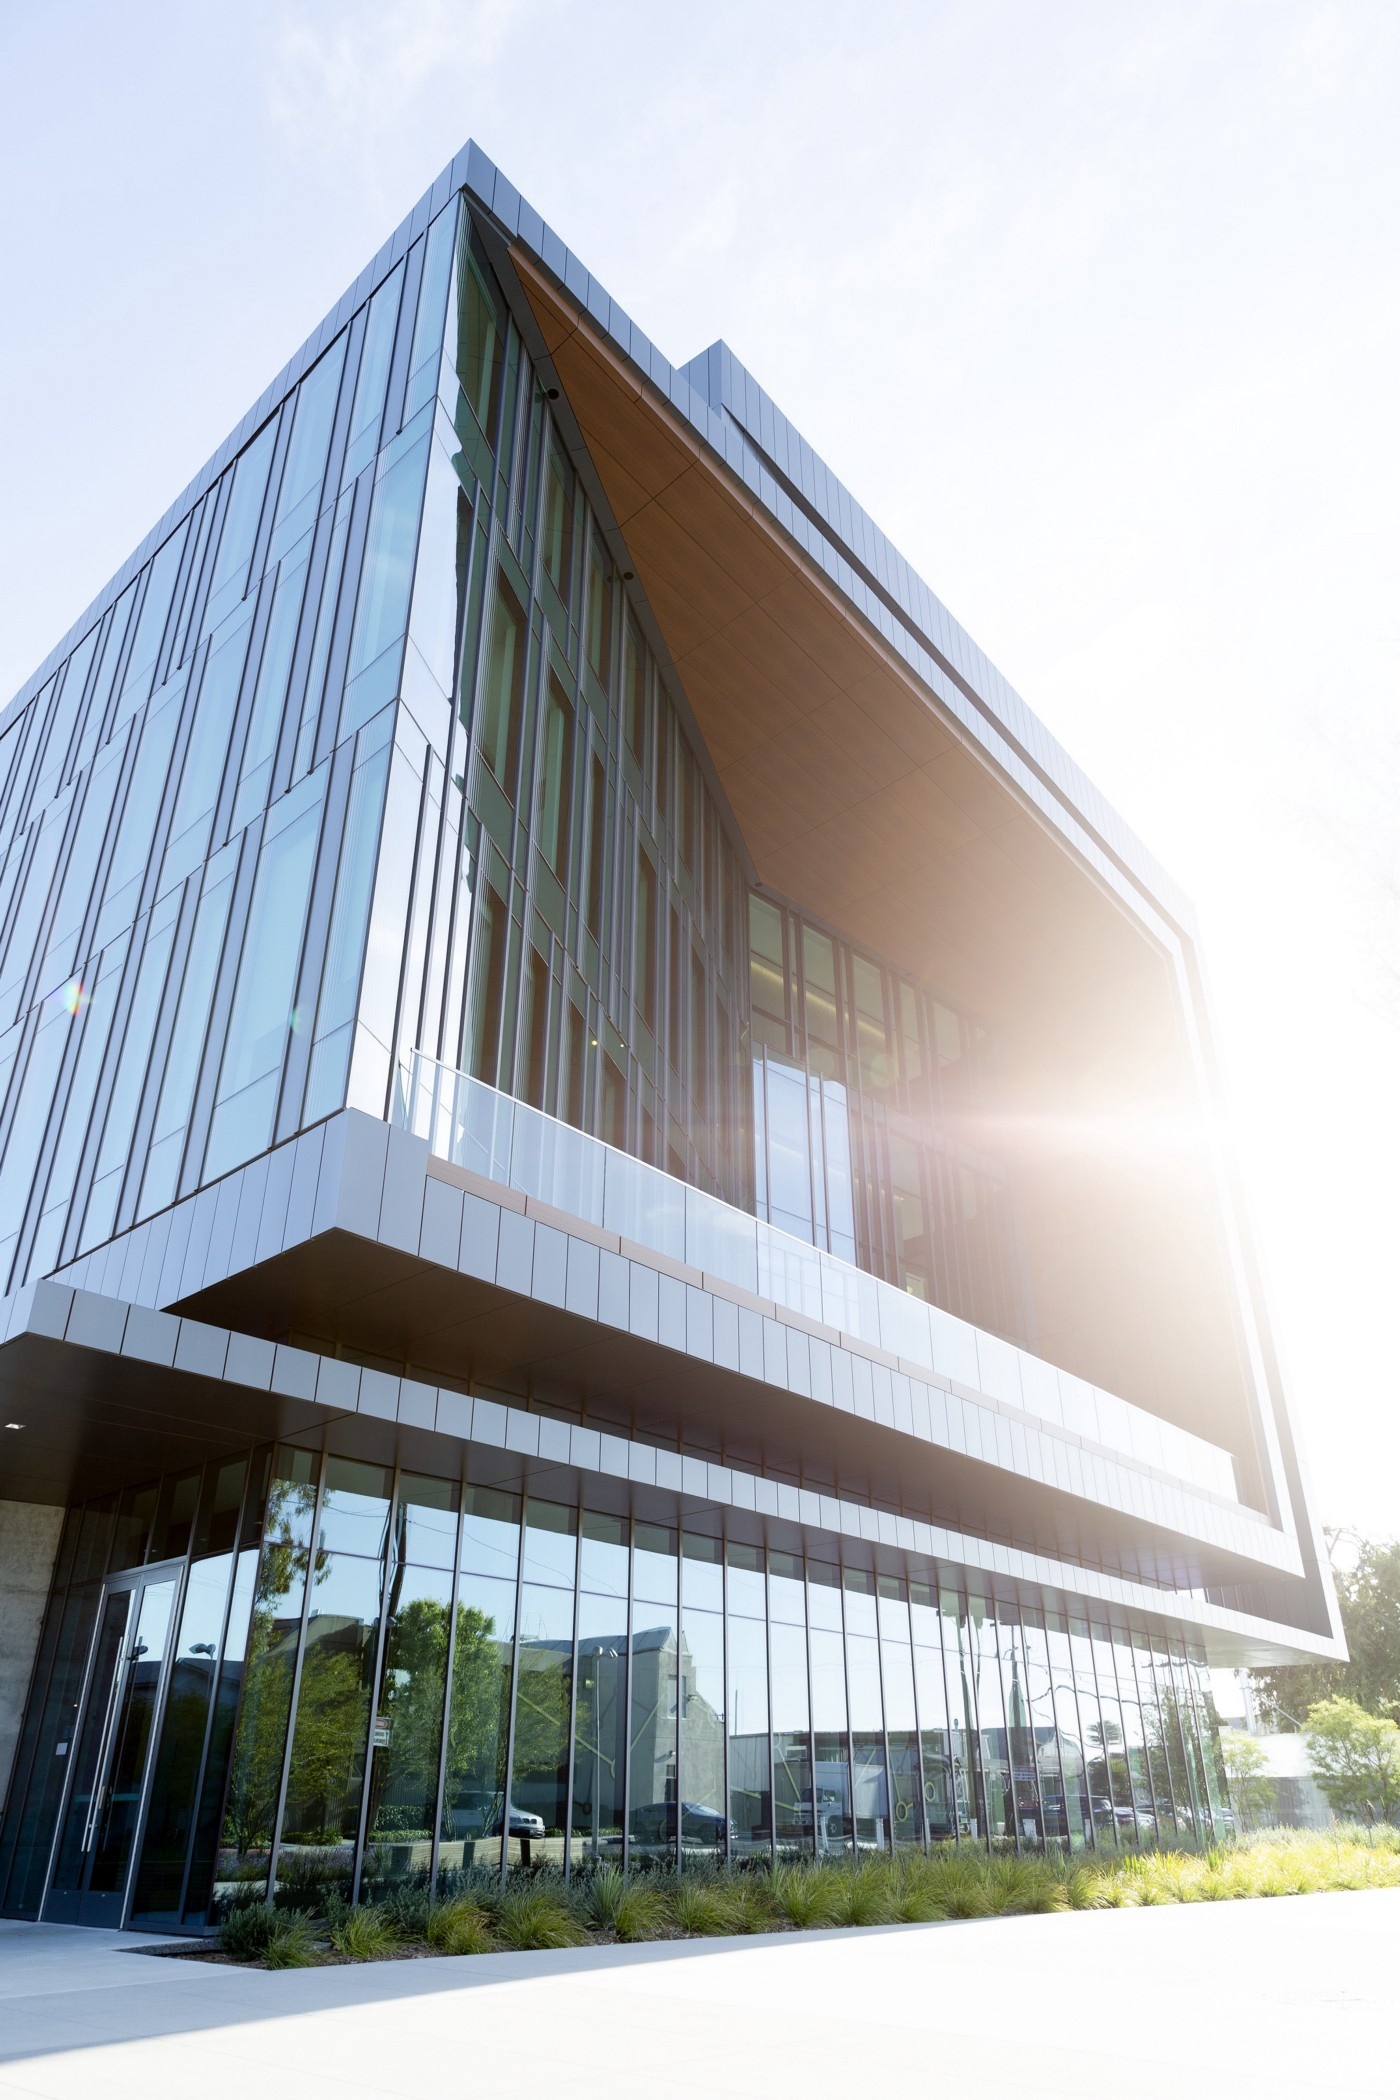 Lundquist Institute for Biomedical Innovation